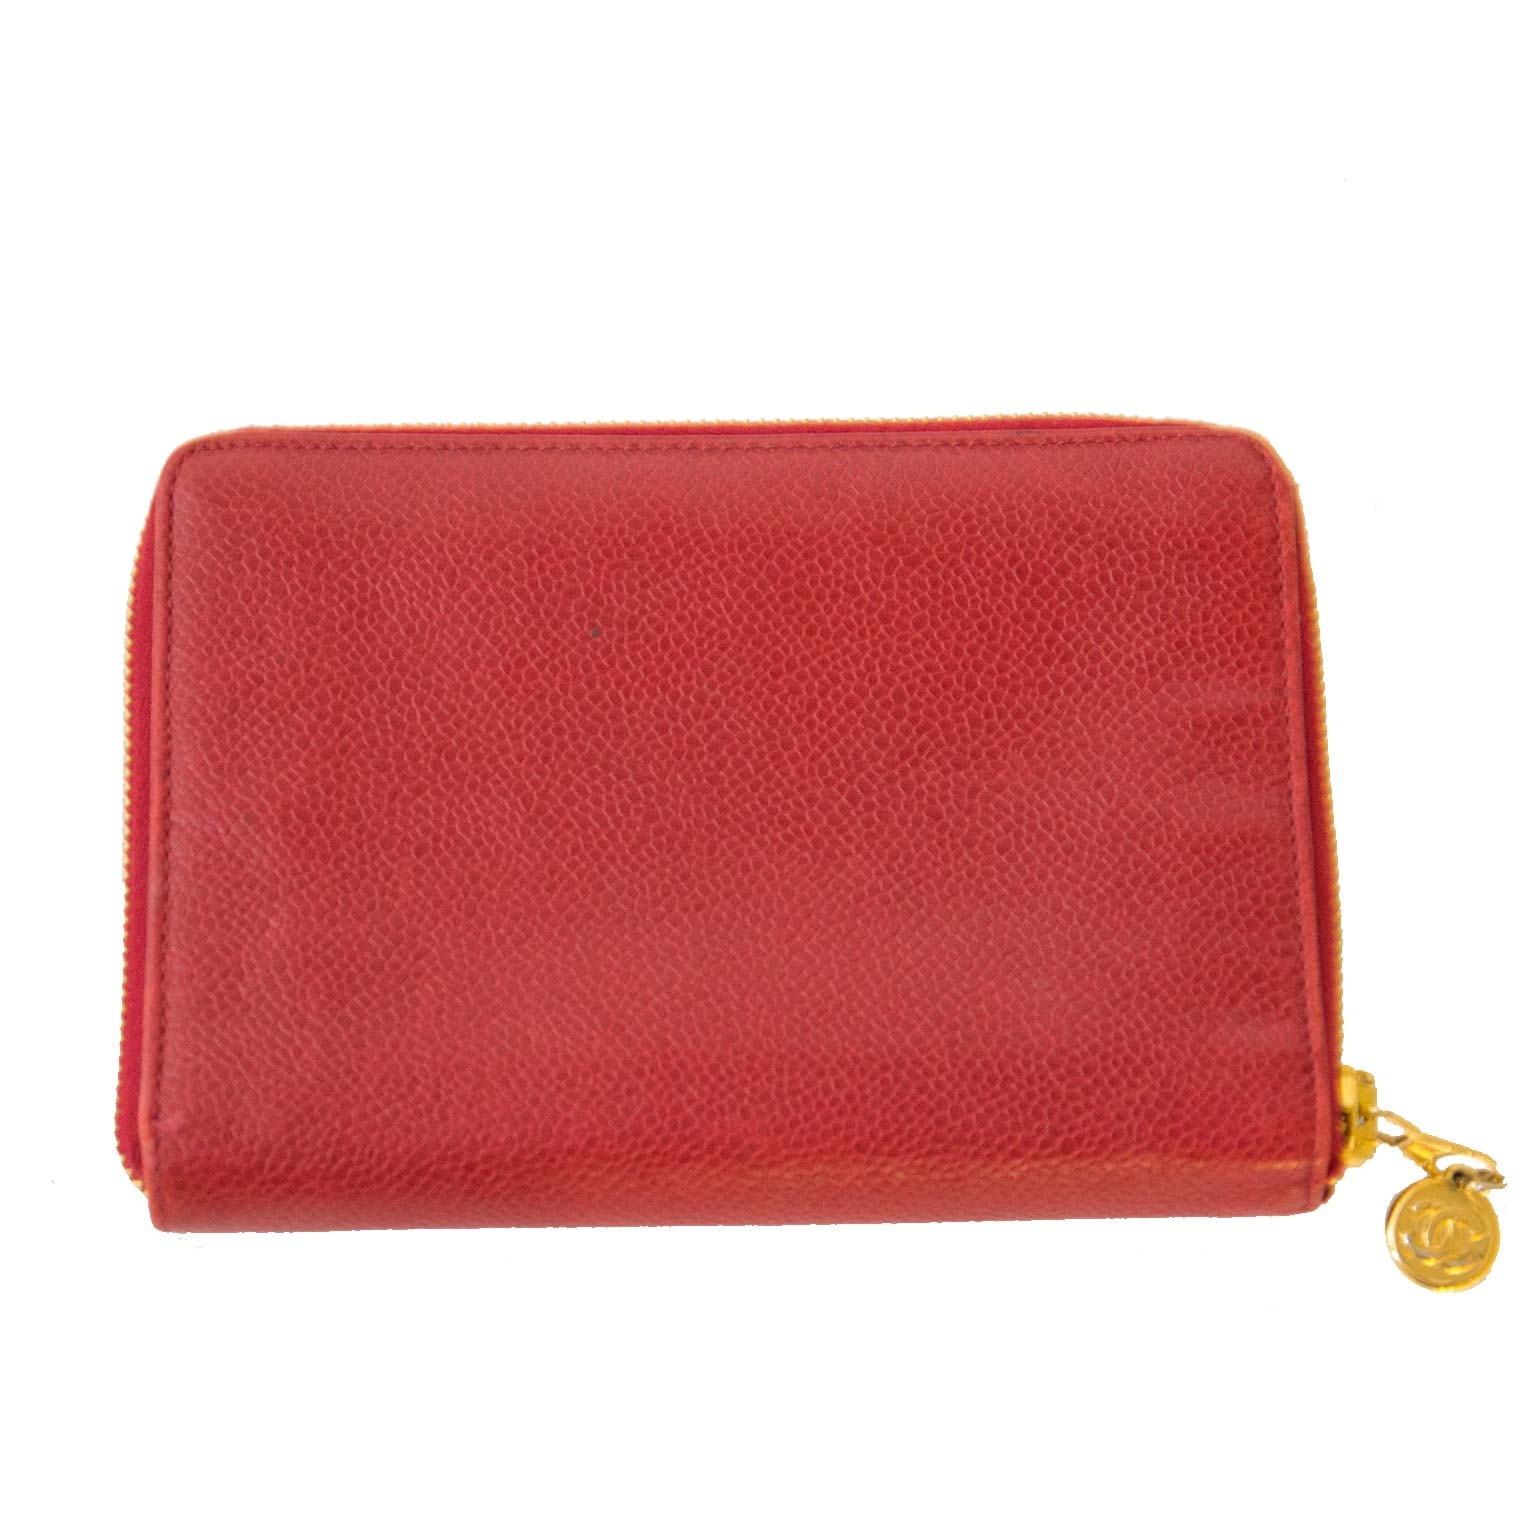 Chanel red caviar leather zip around wallet now for sale at labellov vintage fashion webshop belgium